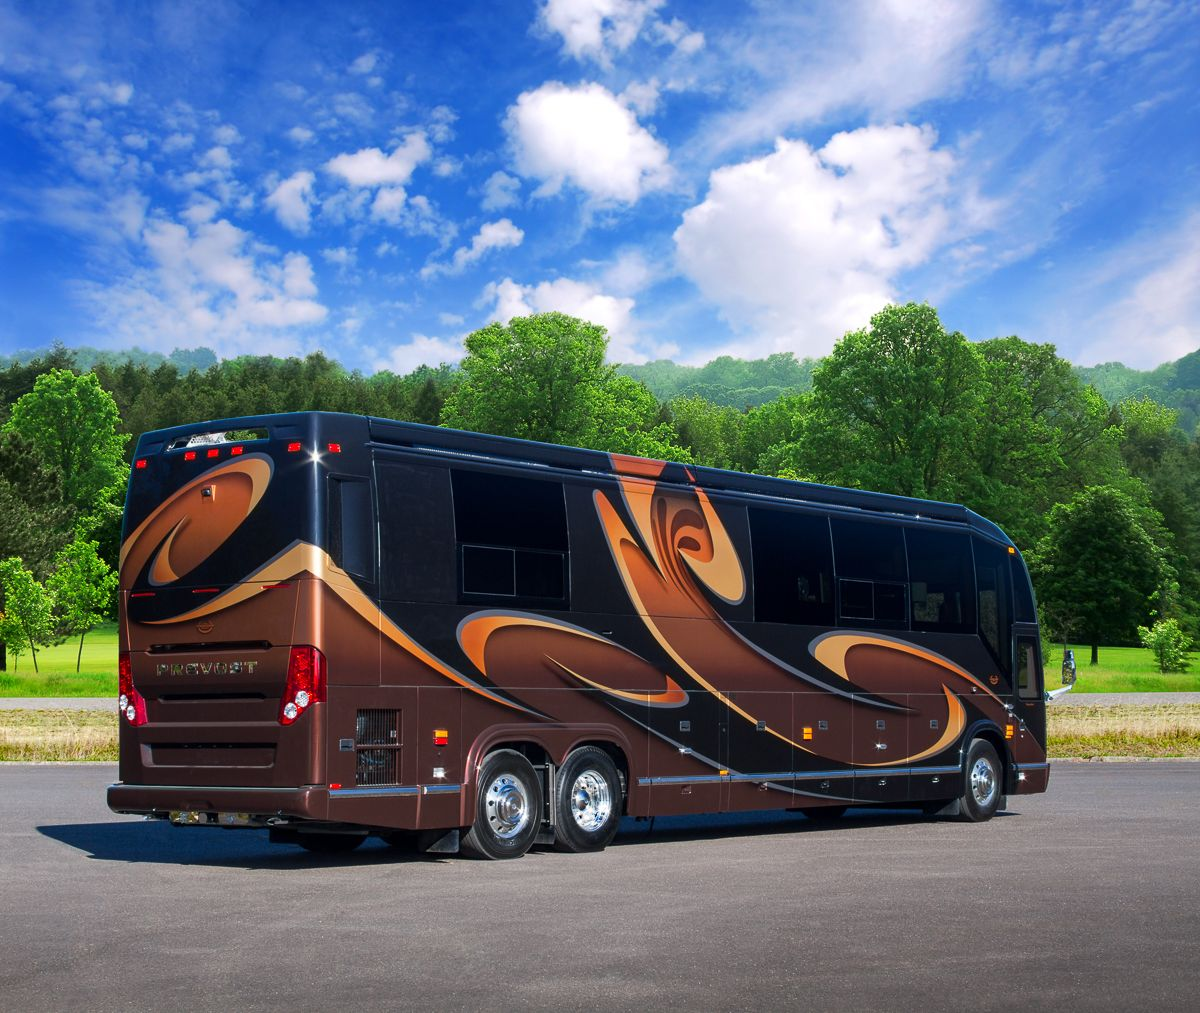 Heres one of our latest creations marathon coach 1221